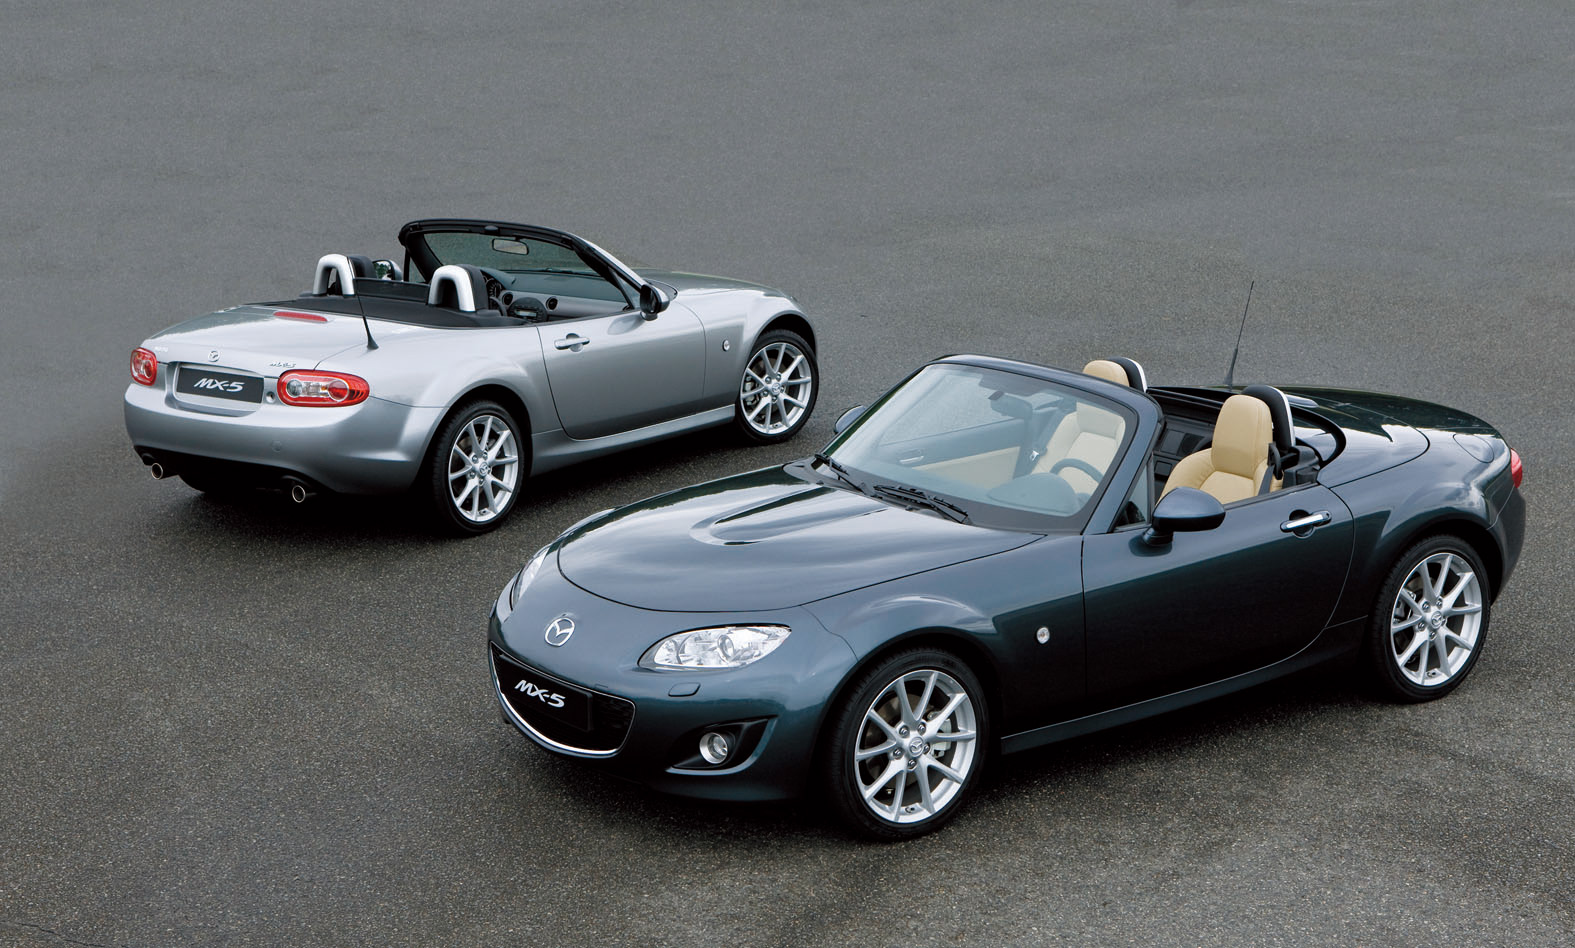 Mazda Mx5 2009 Review Amazing Pictures And Images Look At The Car